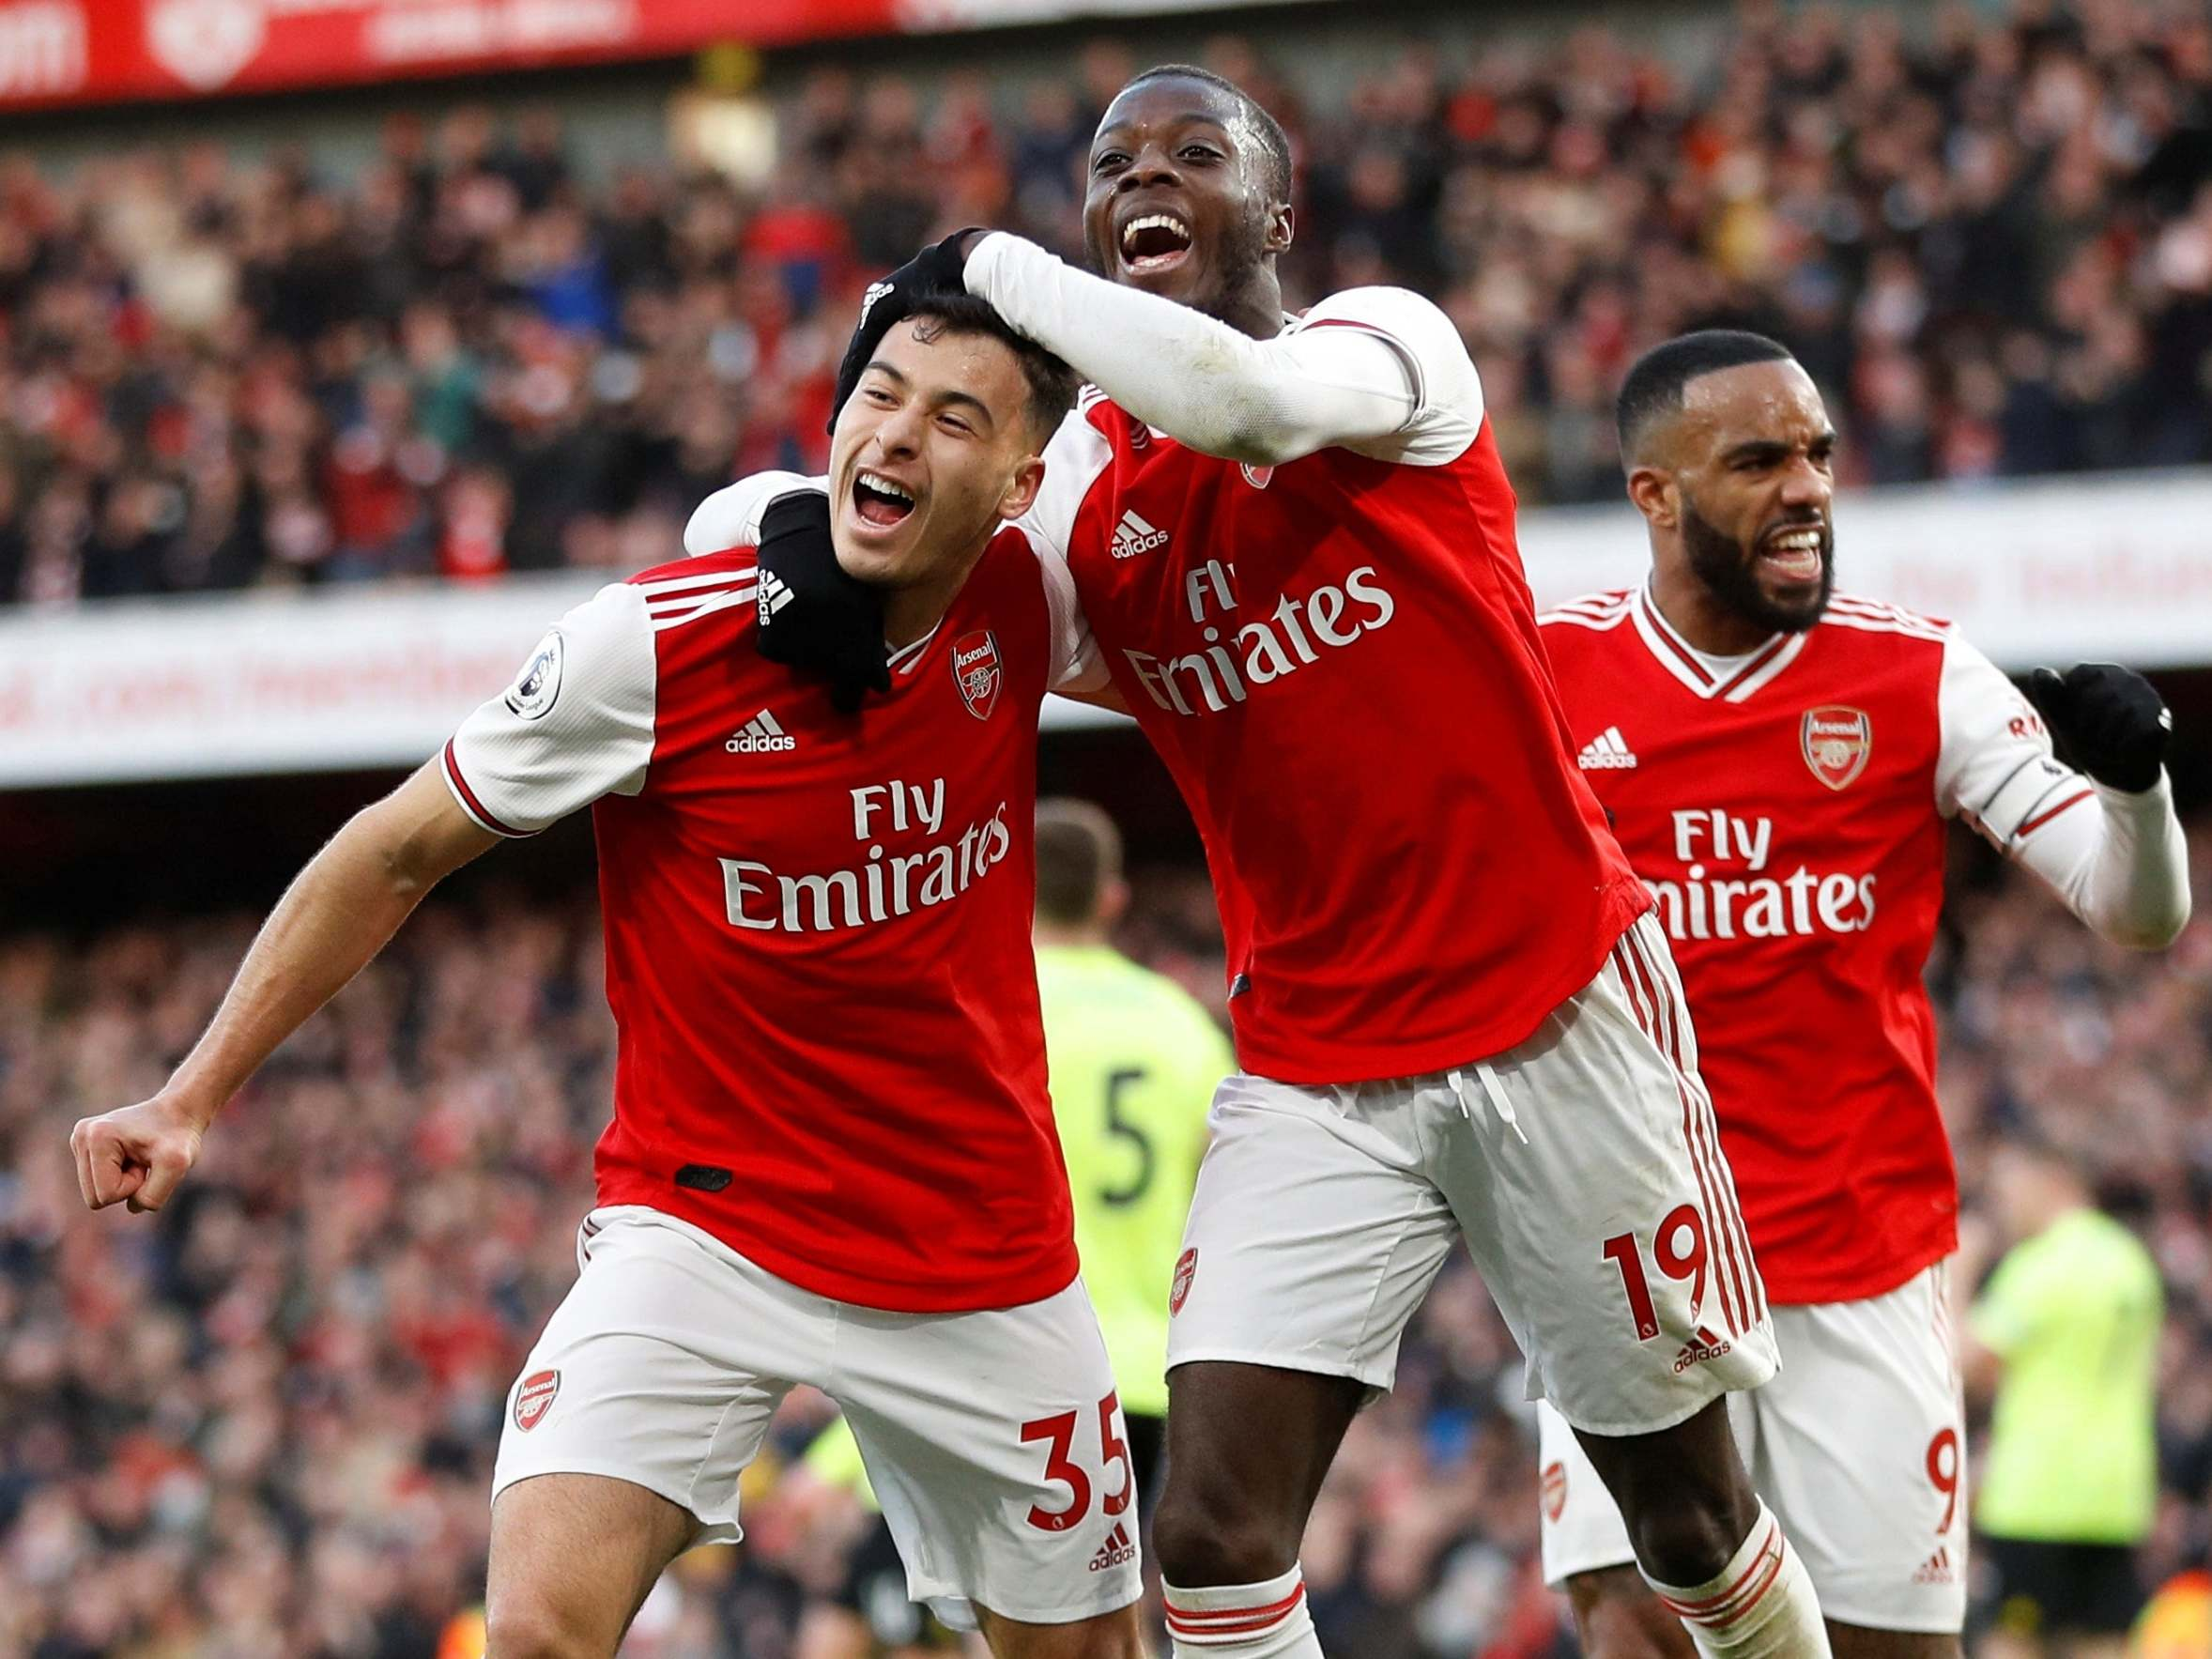 Arsenal can't win anything with kids – it's time Mikel Arteta's established stars stepped up too